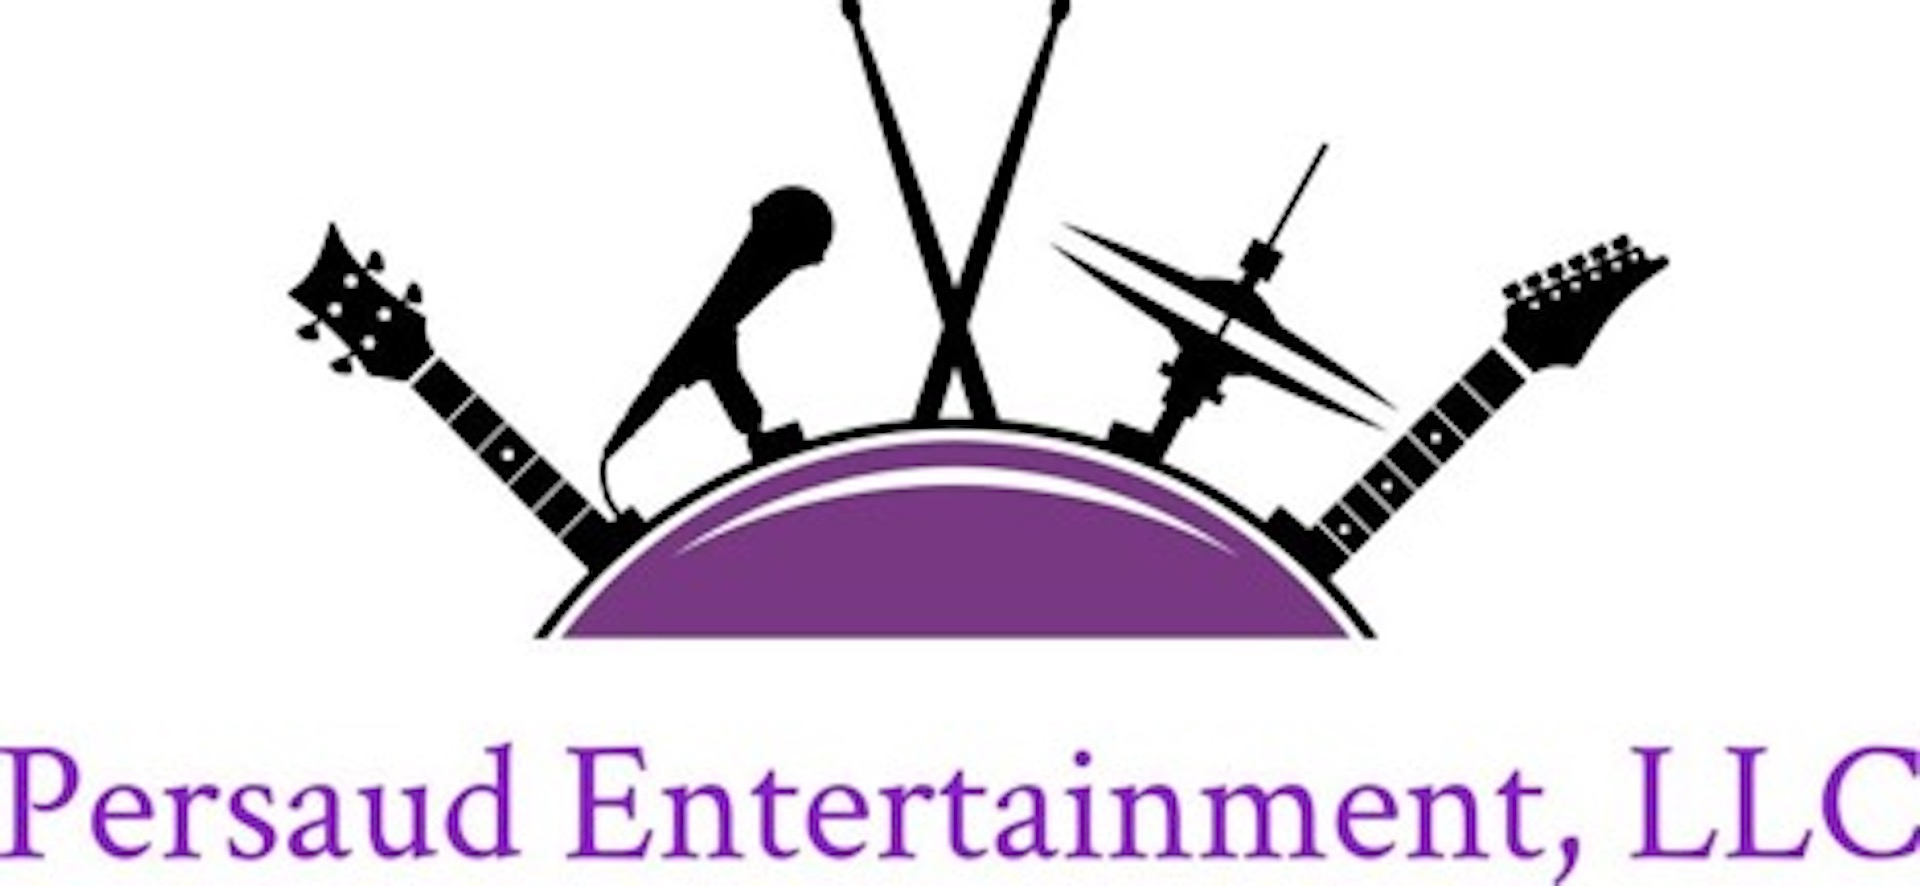 Persaud Entertainment LLC logo.jpg